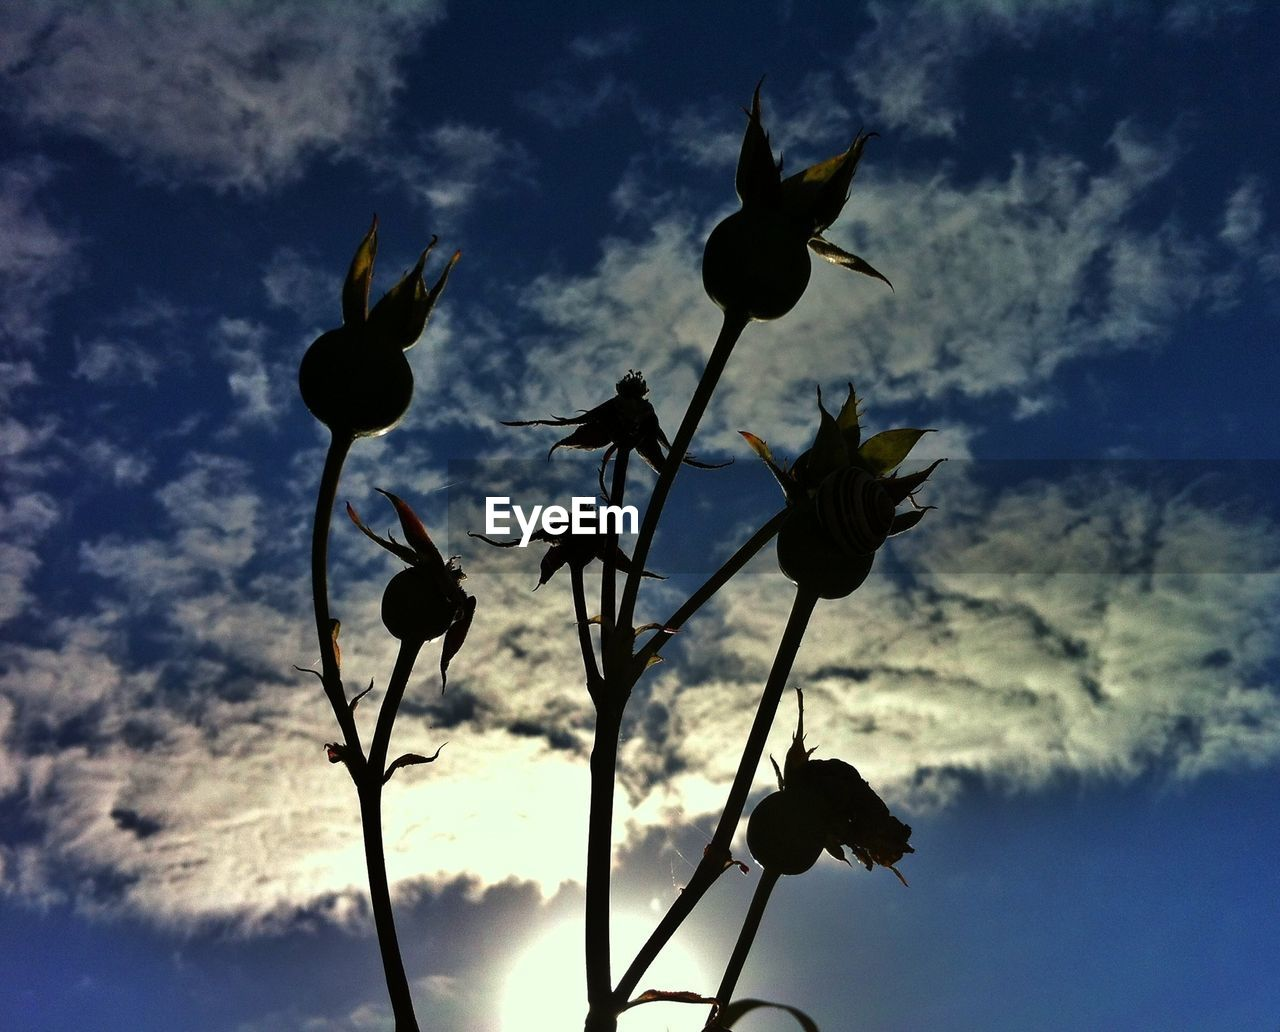 Close-up of silhouette plants against the sky